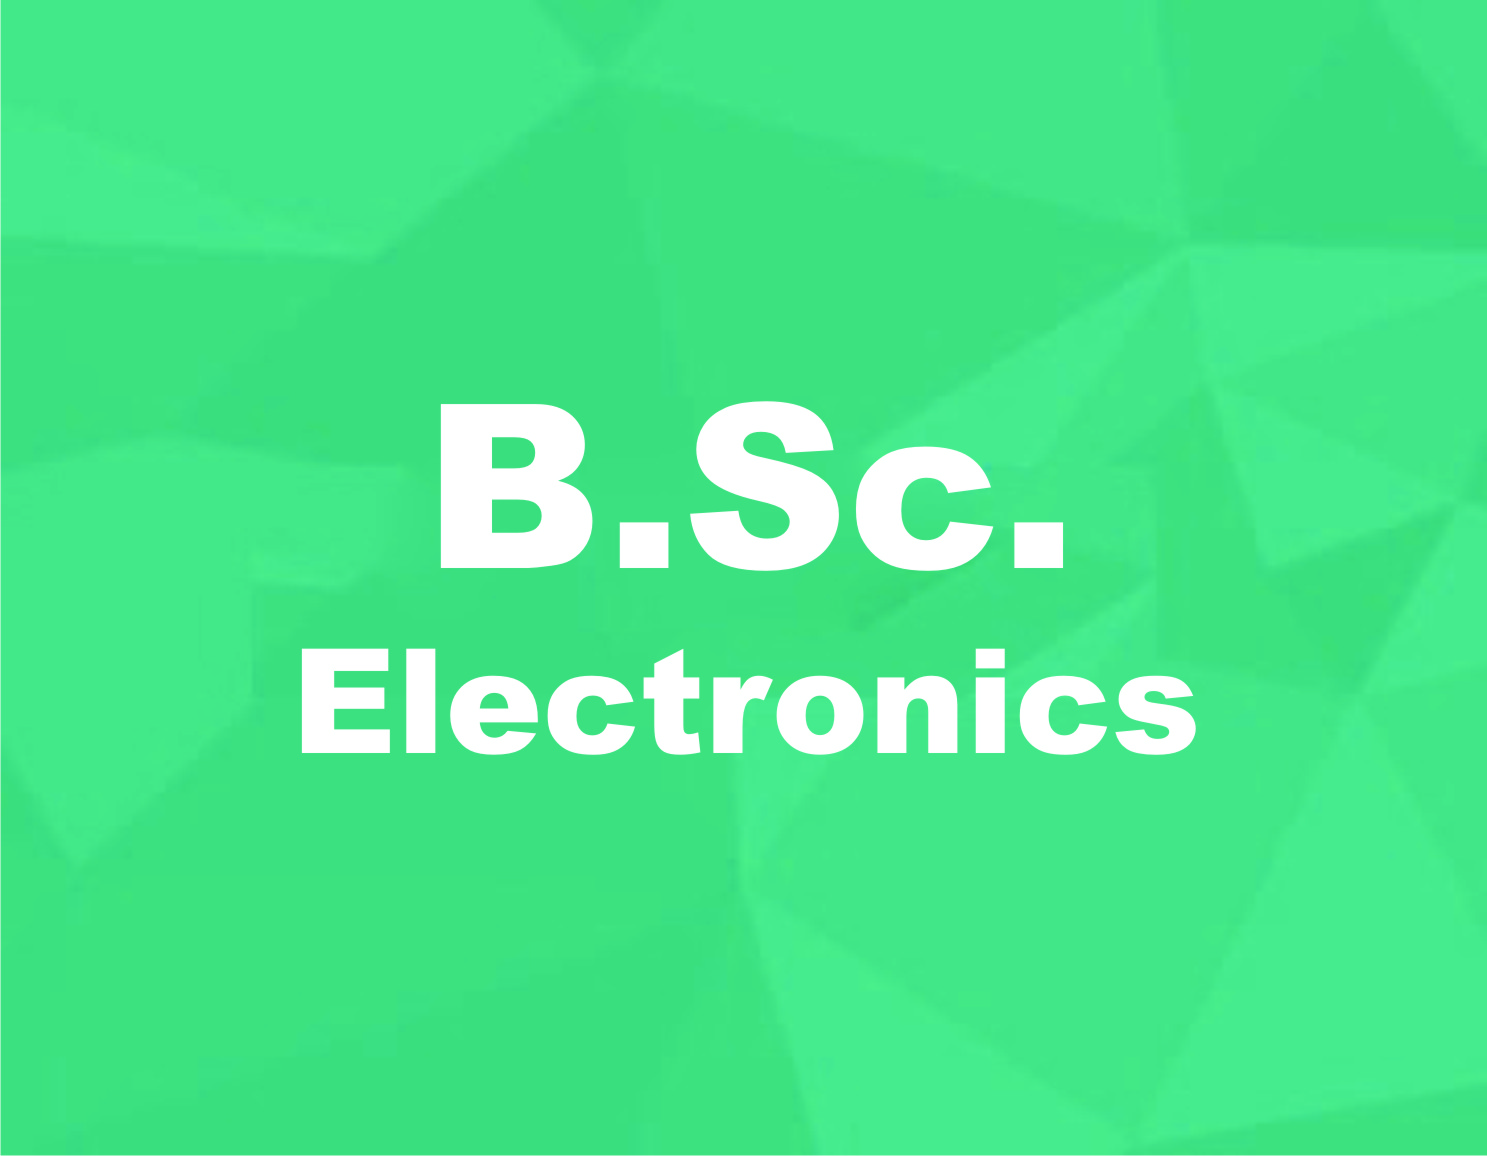 Bachelor of Science in Electronics